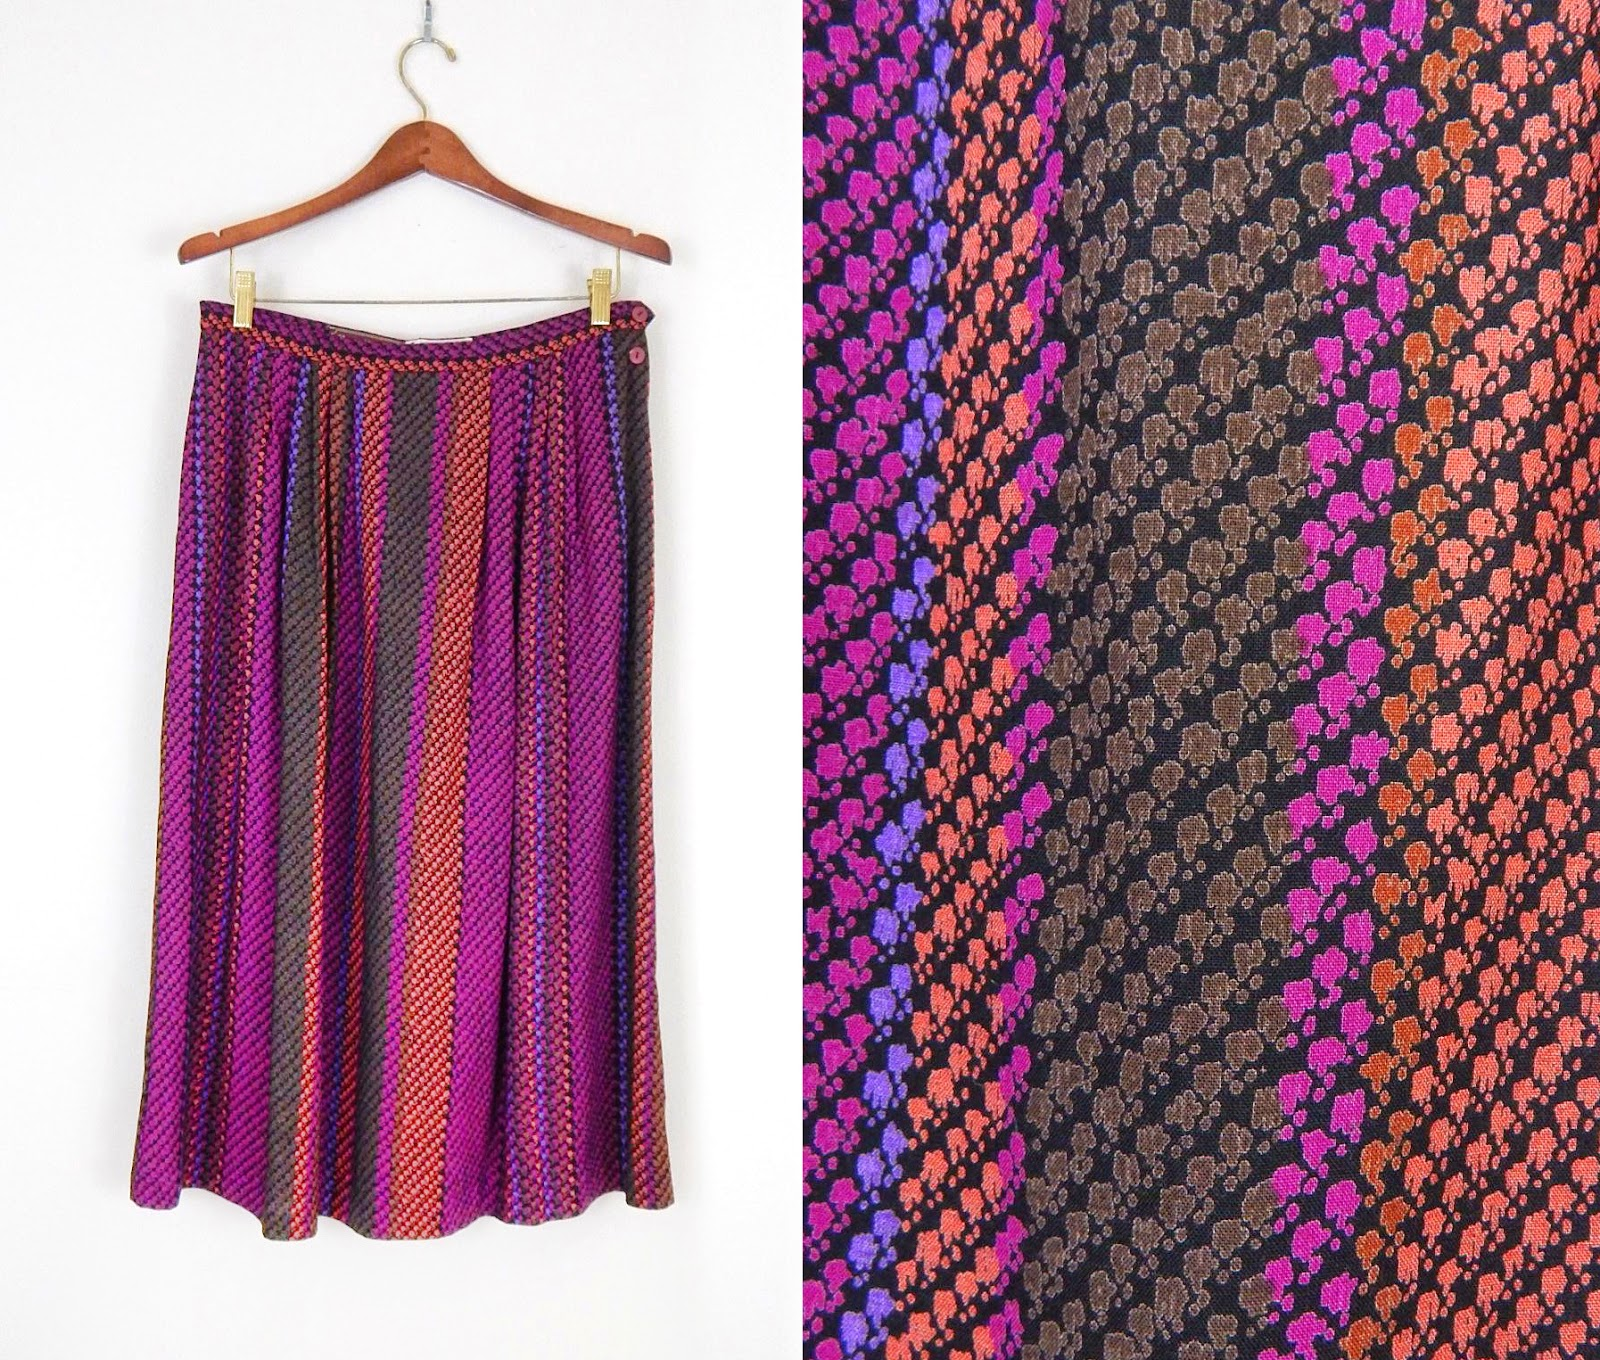 https://www.etsy.com/listing/208809137/vintage-70s-size-14-colorful-snake-print?ref=shop_home_active_22